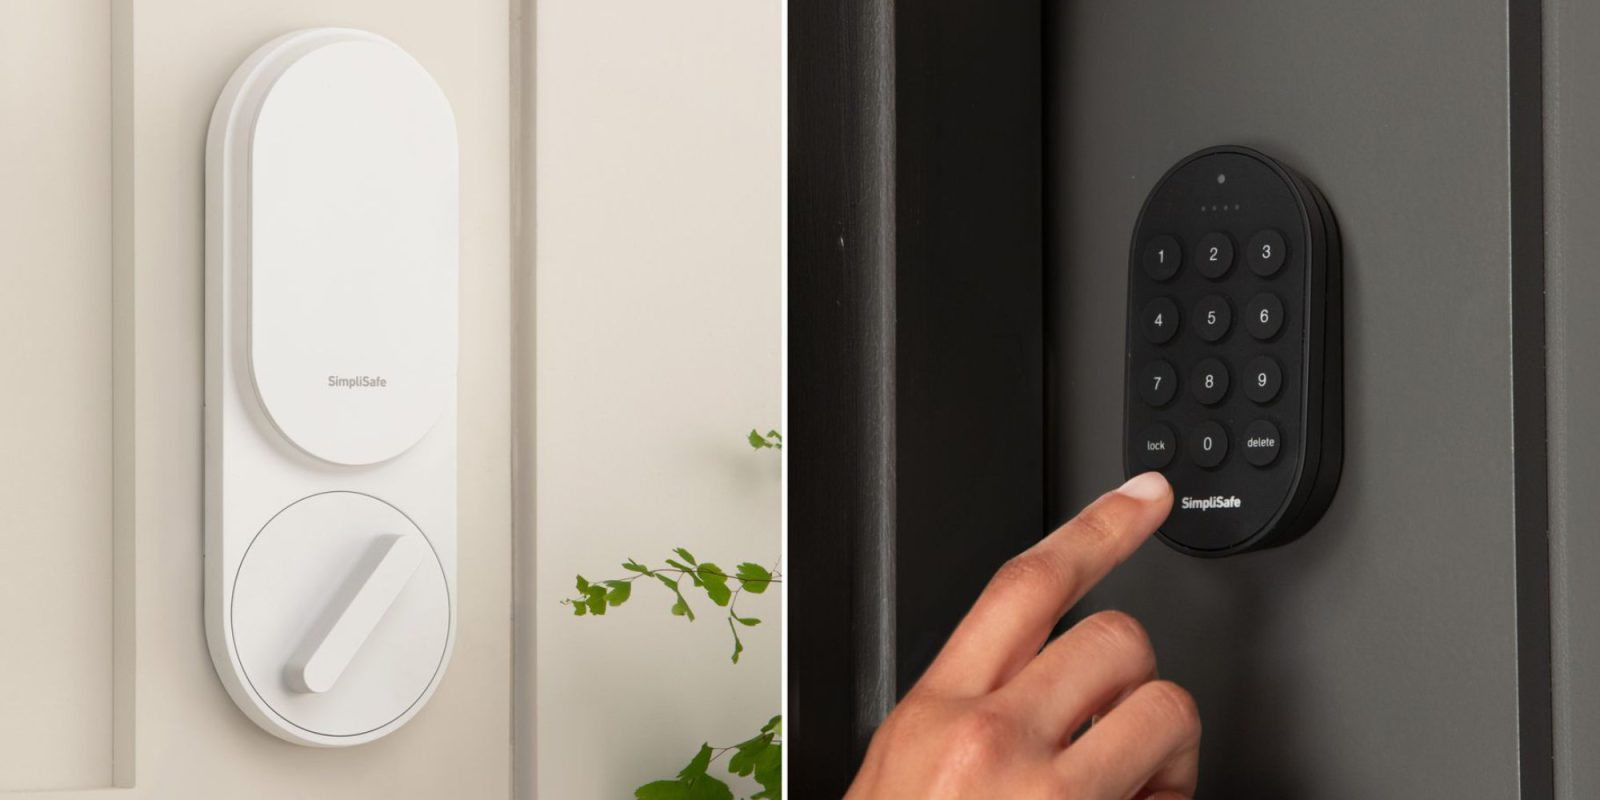 SimpliSafe Smart Lock debuts as 'thinnest on the market' w/ compelling price